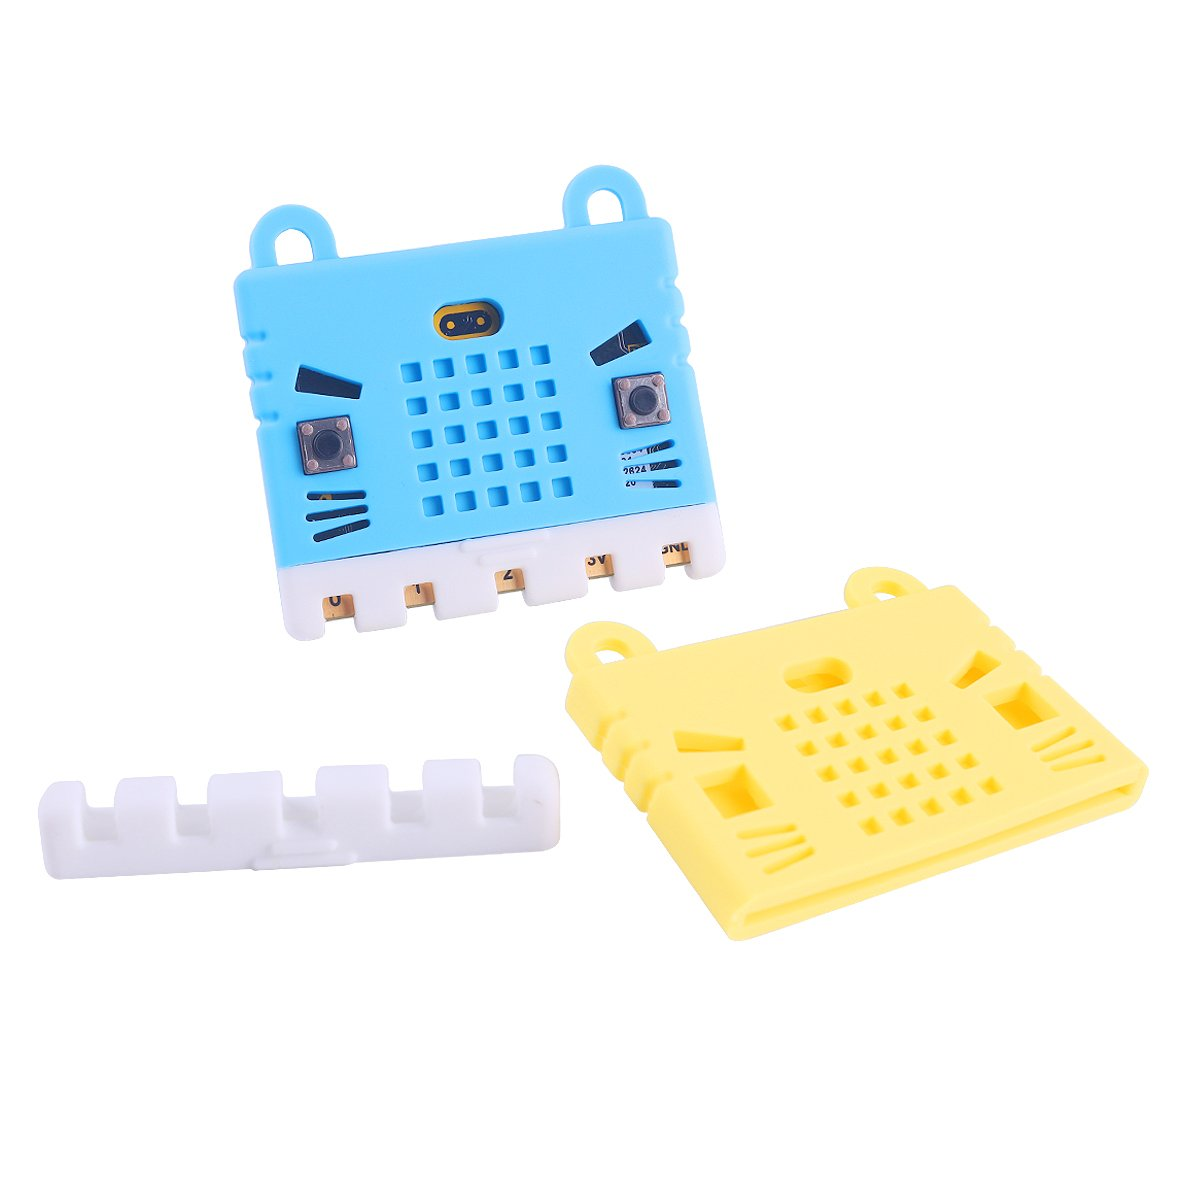 MakerFocus 2pcs Micro:bit Protective Case Non-acrylic Silicone Case Cute Pattern, Soft Microfiber and Easy to Storage for BBC Micro:bit Board Blue and Yellow